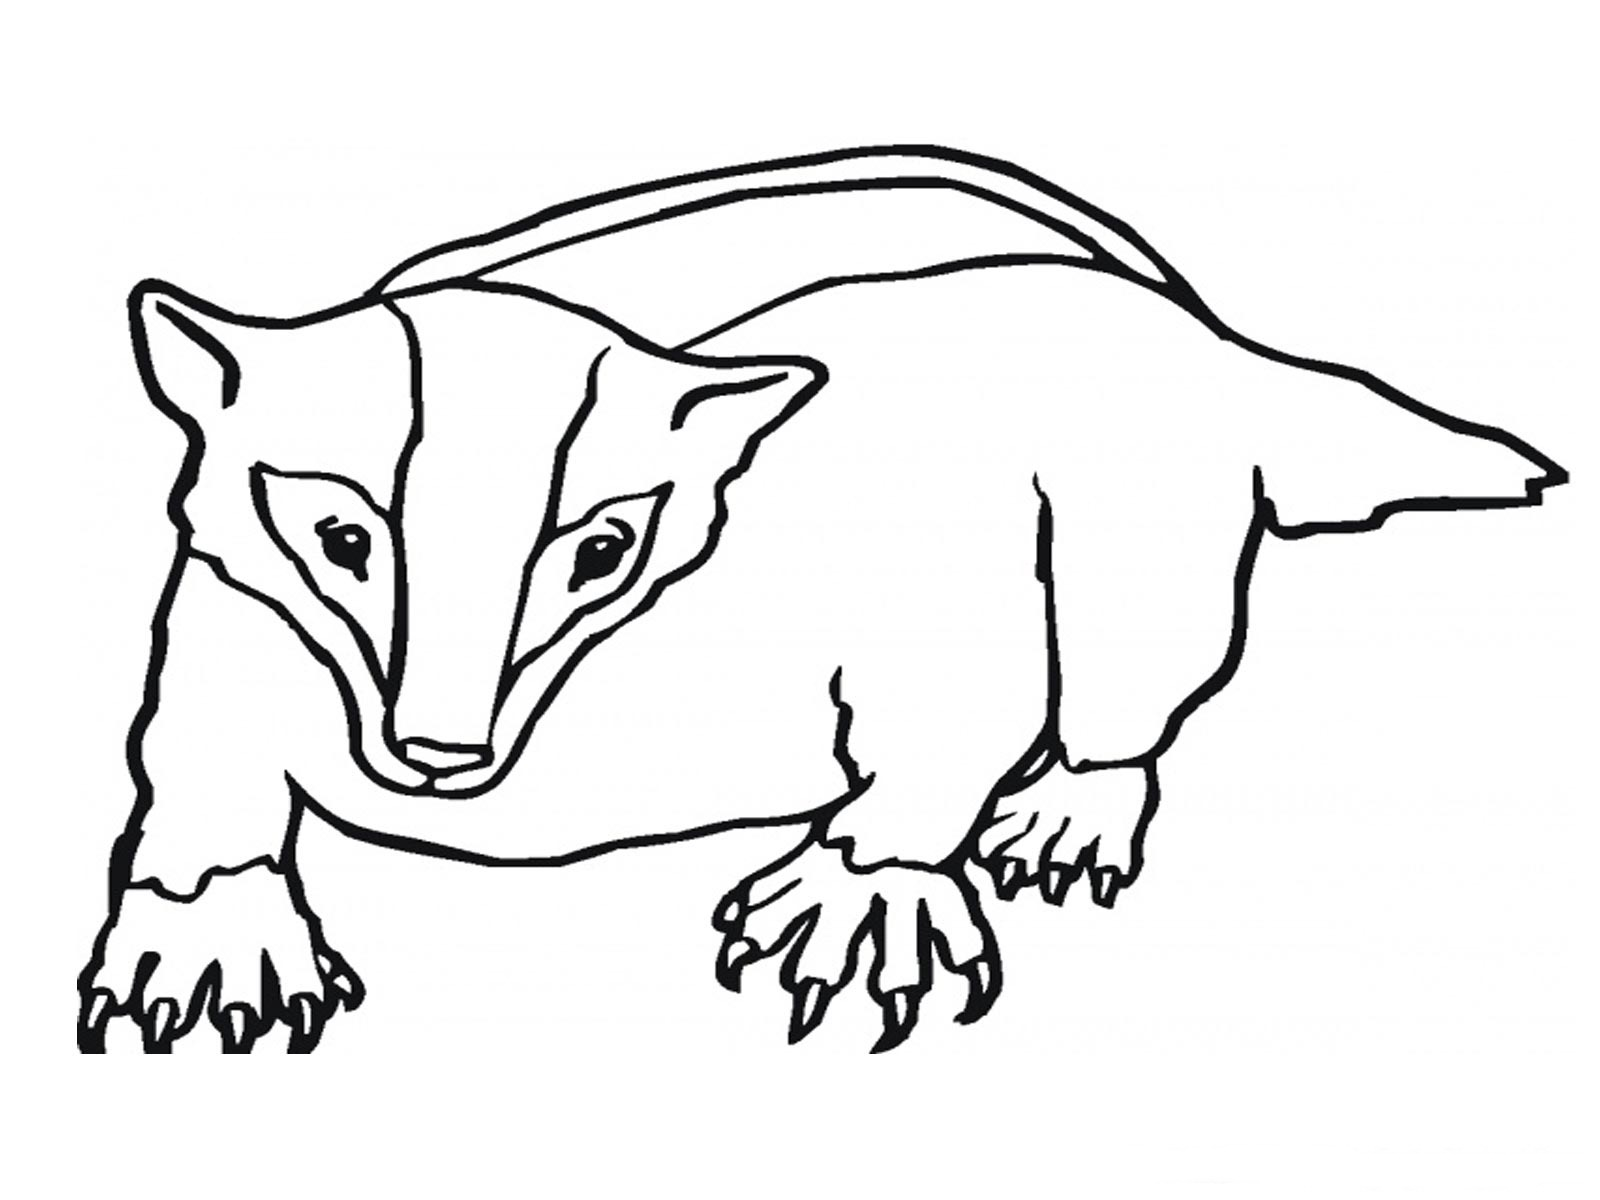 coloring pages badgers - photo#3